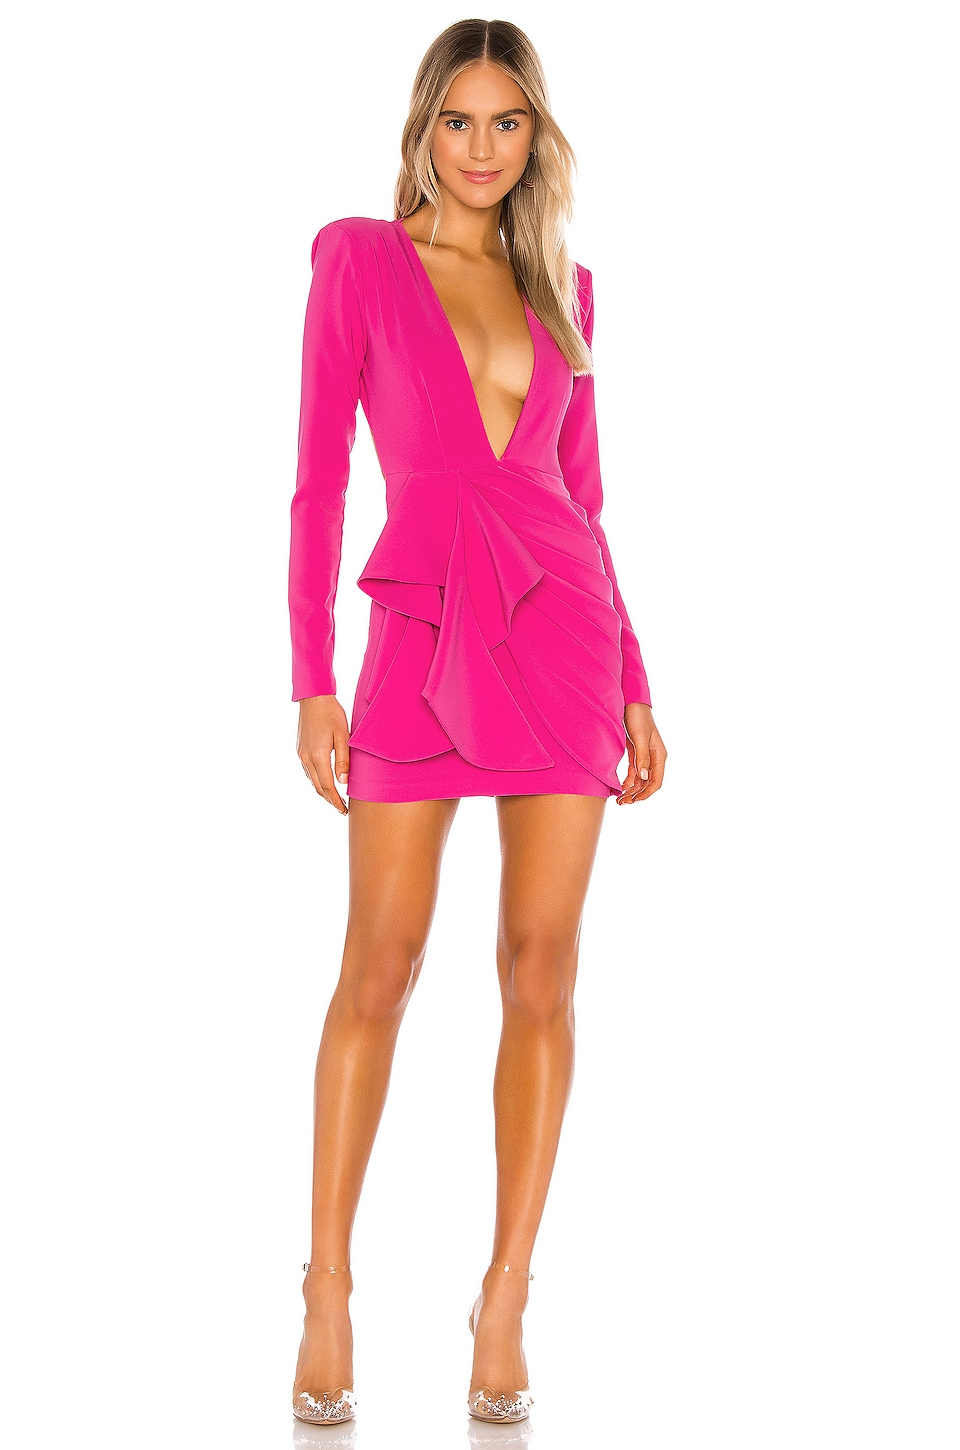 Michael Costello X Revolve Fena Mini Dress In Fuchsia Revolve Check our latest styles of leather such as dresses at revolve free shipping for orders above $100 usd. michael costello